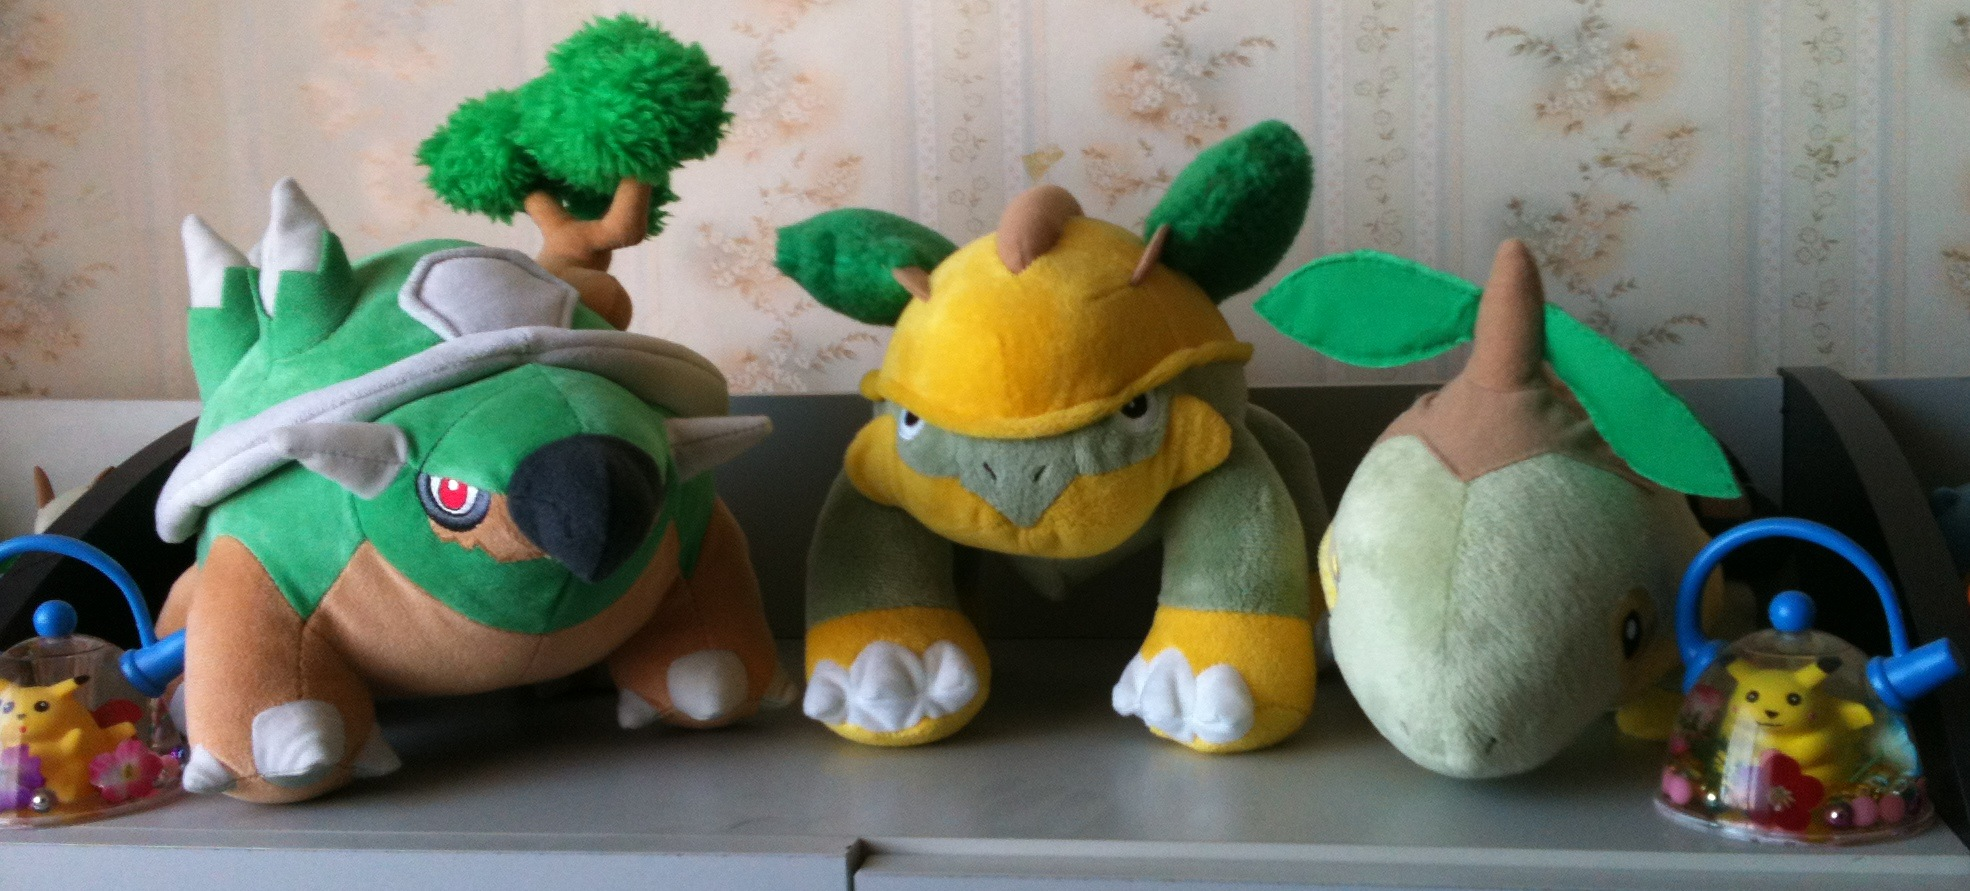 Pokemon Grass starters plush line